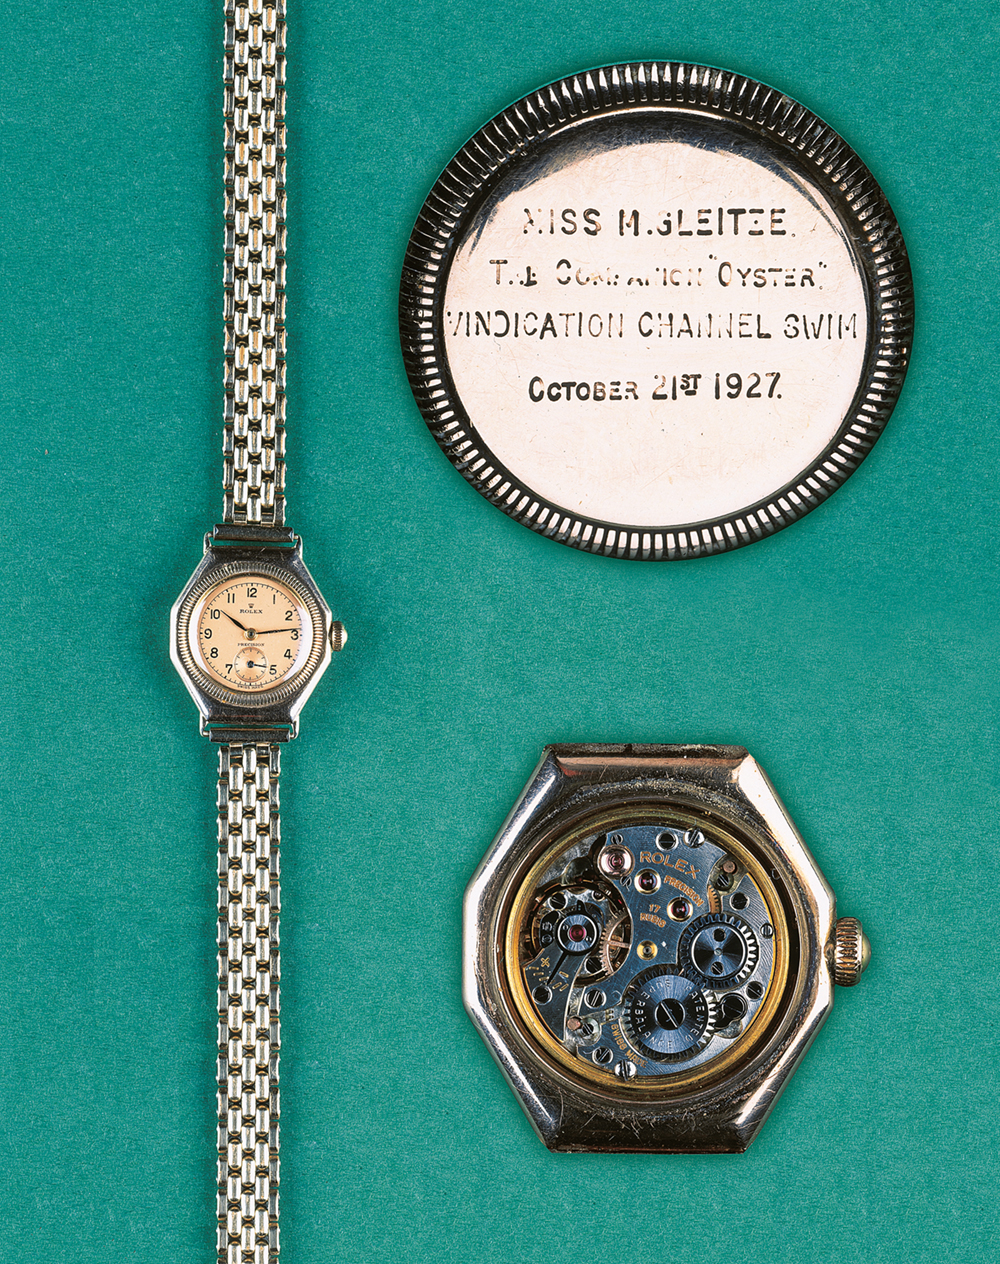 Oyster Precision, 1926:  Mercedes Gleitze wore this watch when she swam across the English Channel on October 21, 1927  Photo © Christie's, Geneva